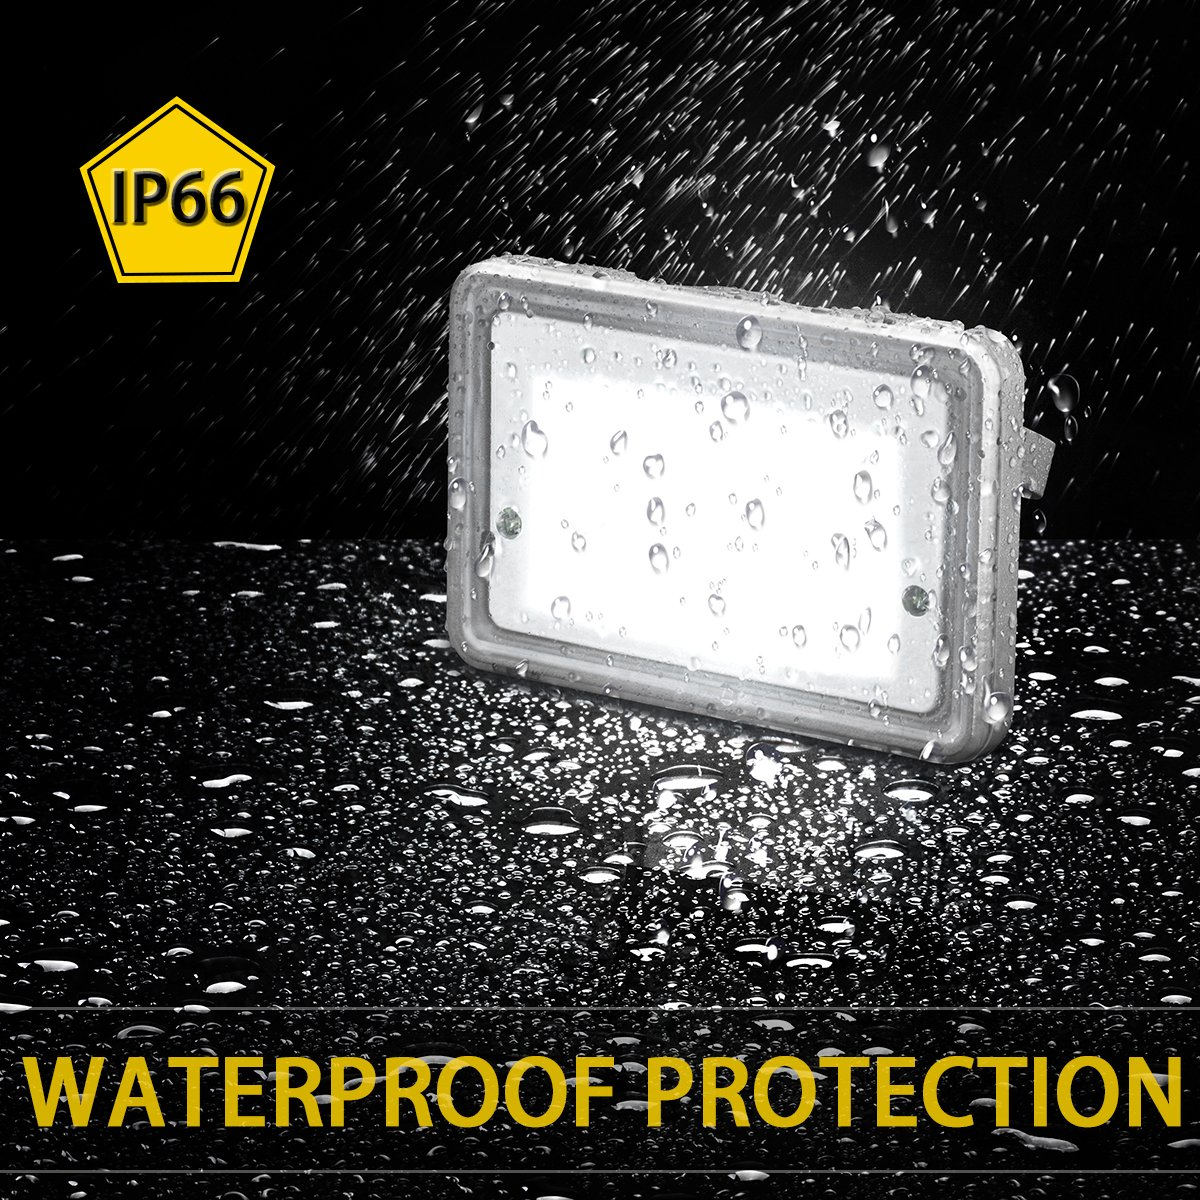 LED Flood Light Outdoor STASUN 150W 13500lm LED Security Lights with Wider Lighting Area Waterproof Built with CREE LED Chips 3000K Warm White Great for Yard Street Parking Lot